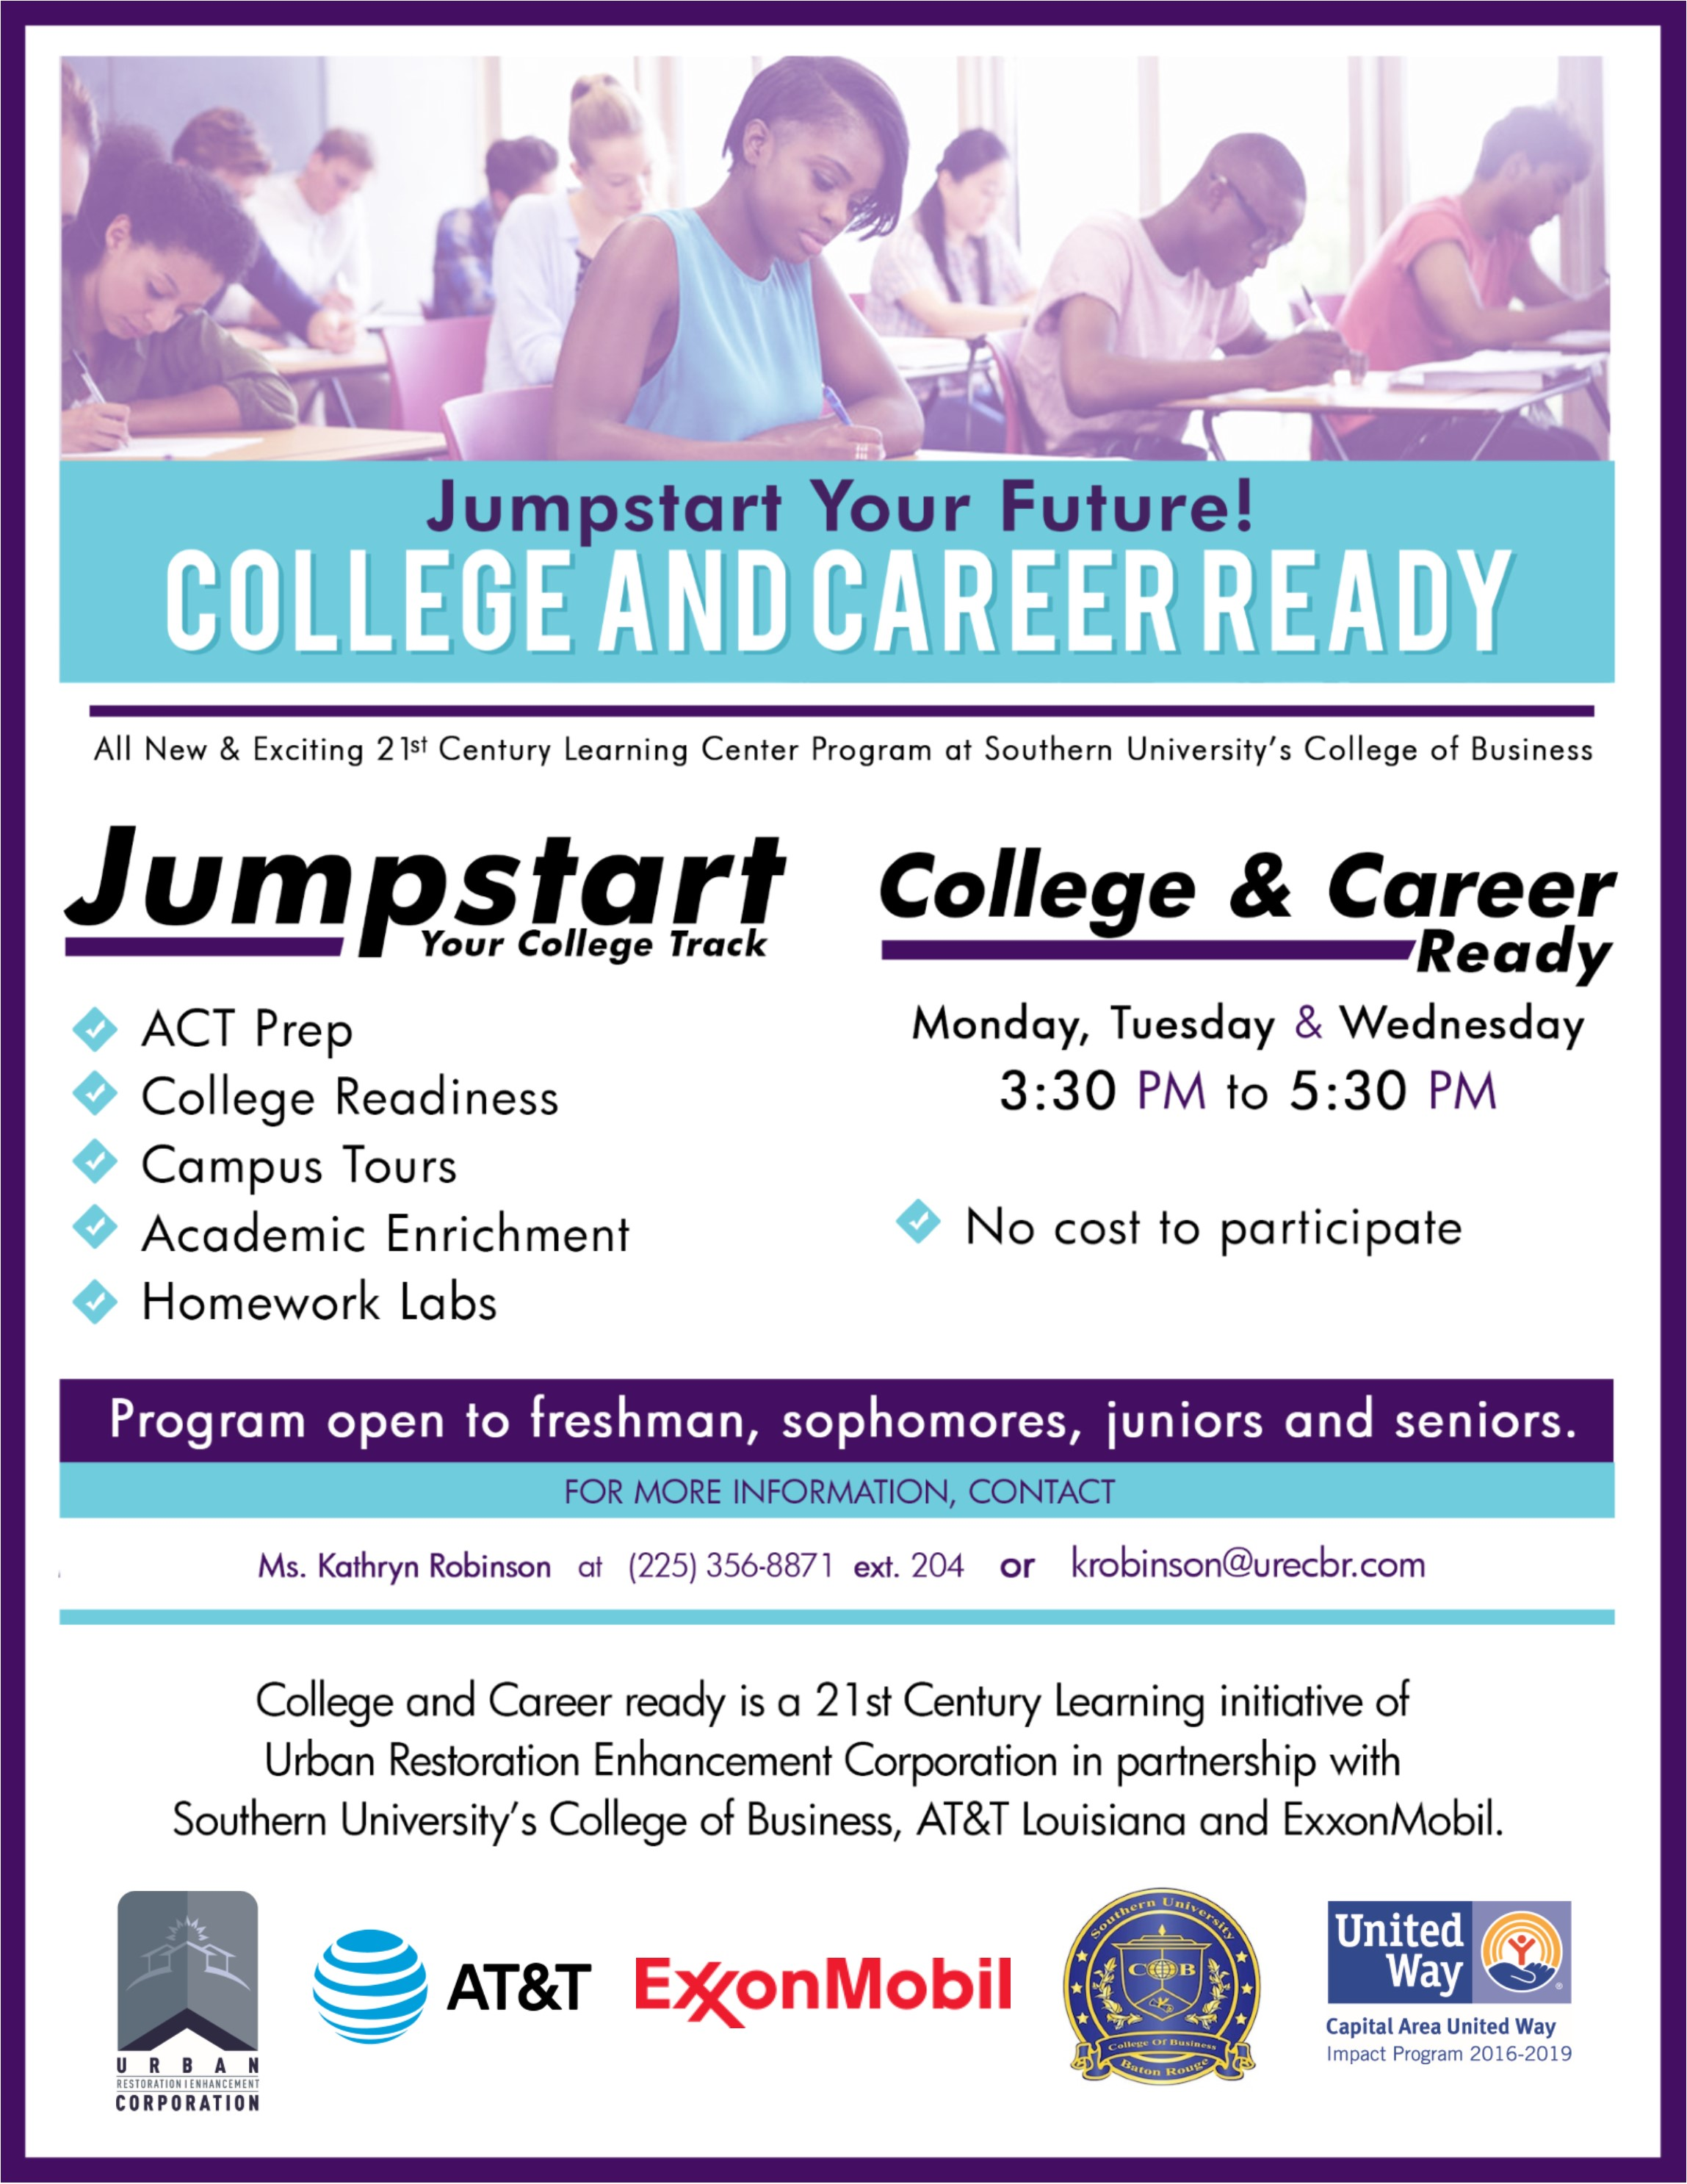 urec-college-and-career-ready